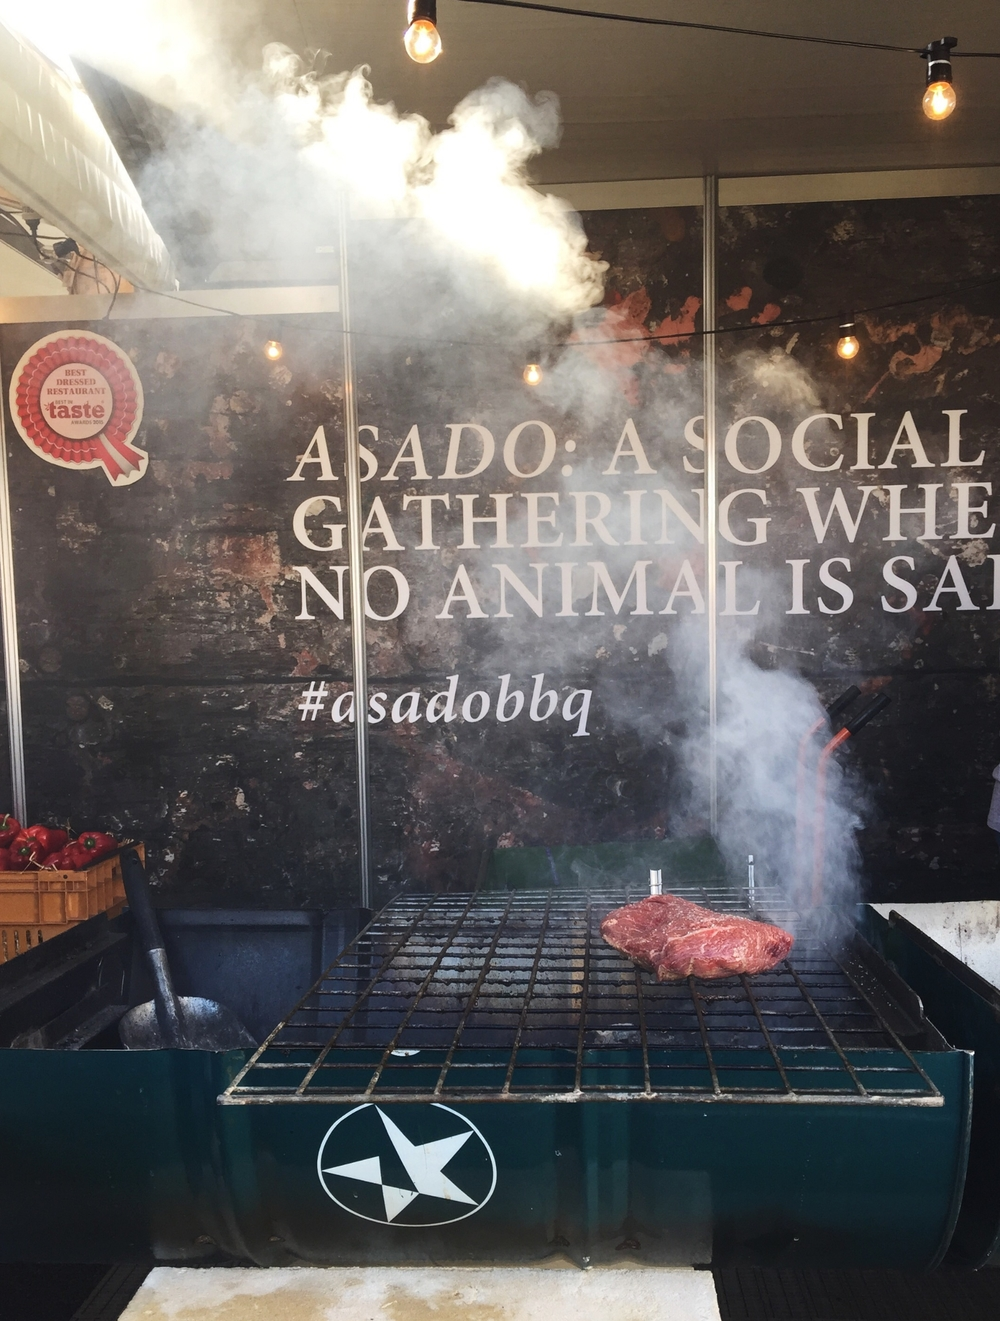 'A social gathering where no animal is safe.' That's a mighty strong statement, backed up by  serious cuts of beef smoking up on the drums at  Asado  and clearly the reason why they won Best Dressed stall on Friday. Owner Rob Bates-Smith opened up the doors to Asado, a hip Argentinian restaurant with a relaxed bar, in Claremont earlier this year and its been going down a treat.